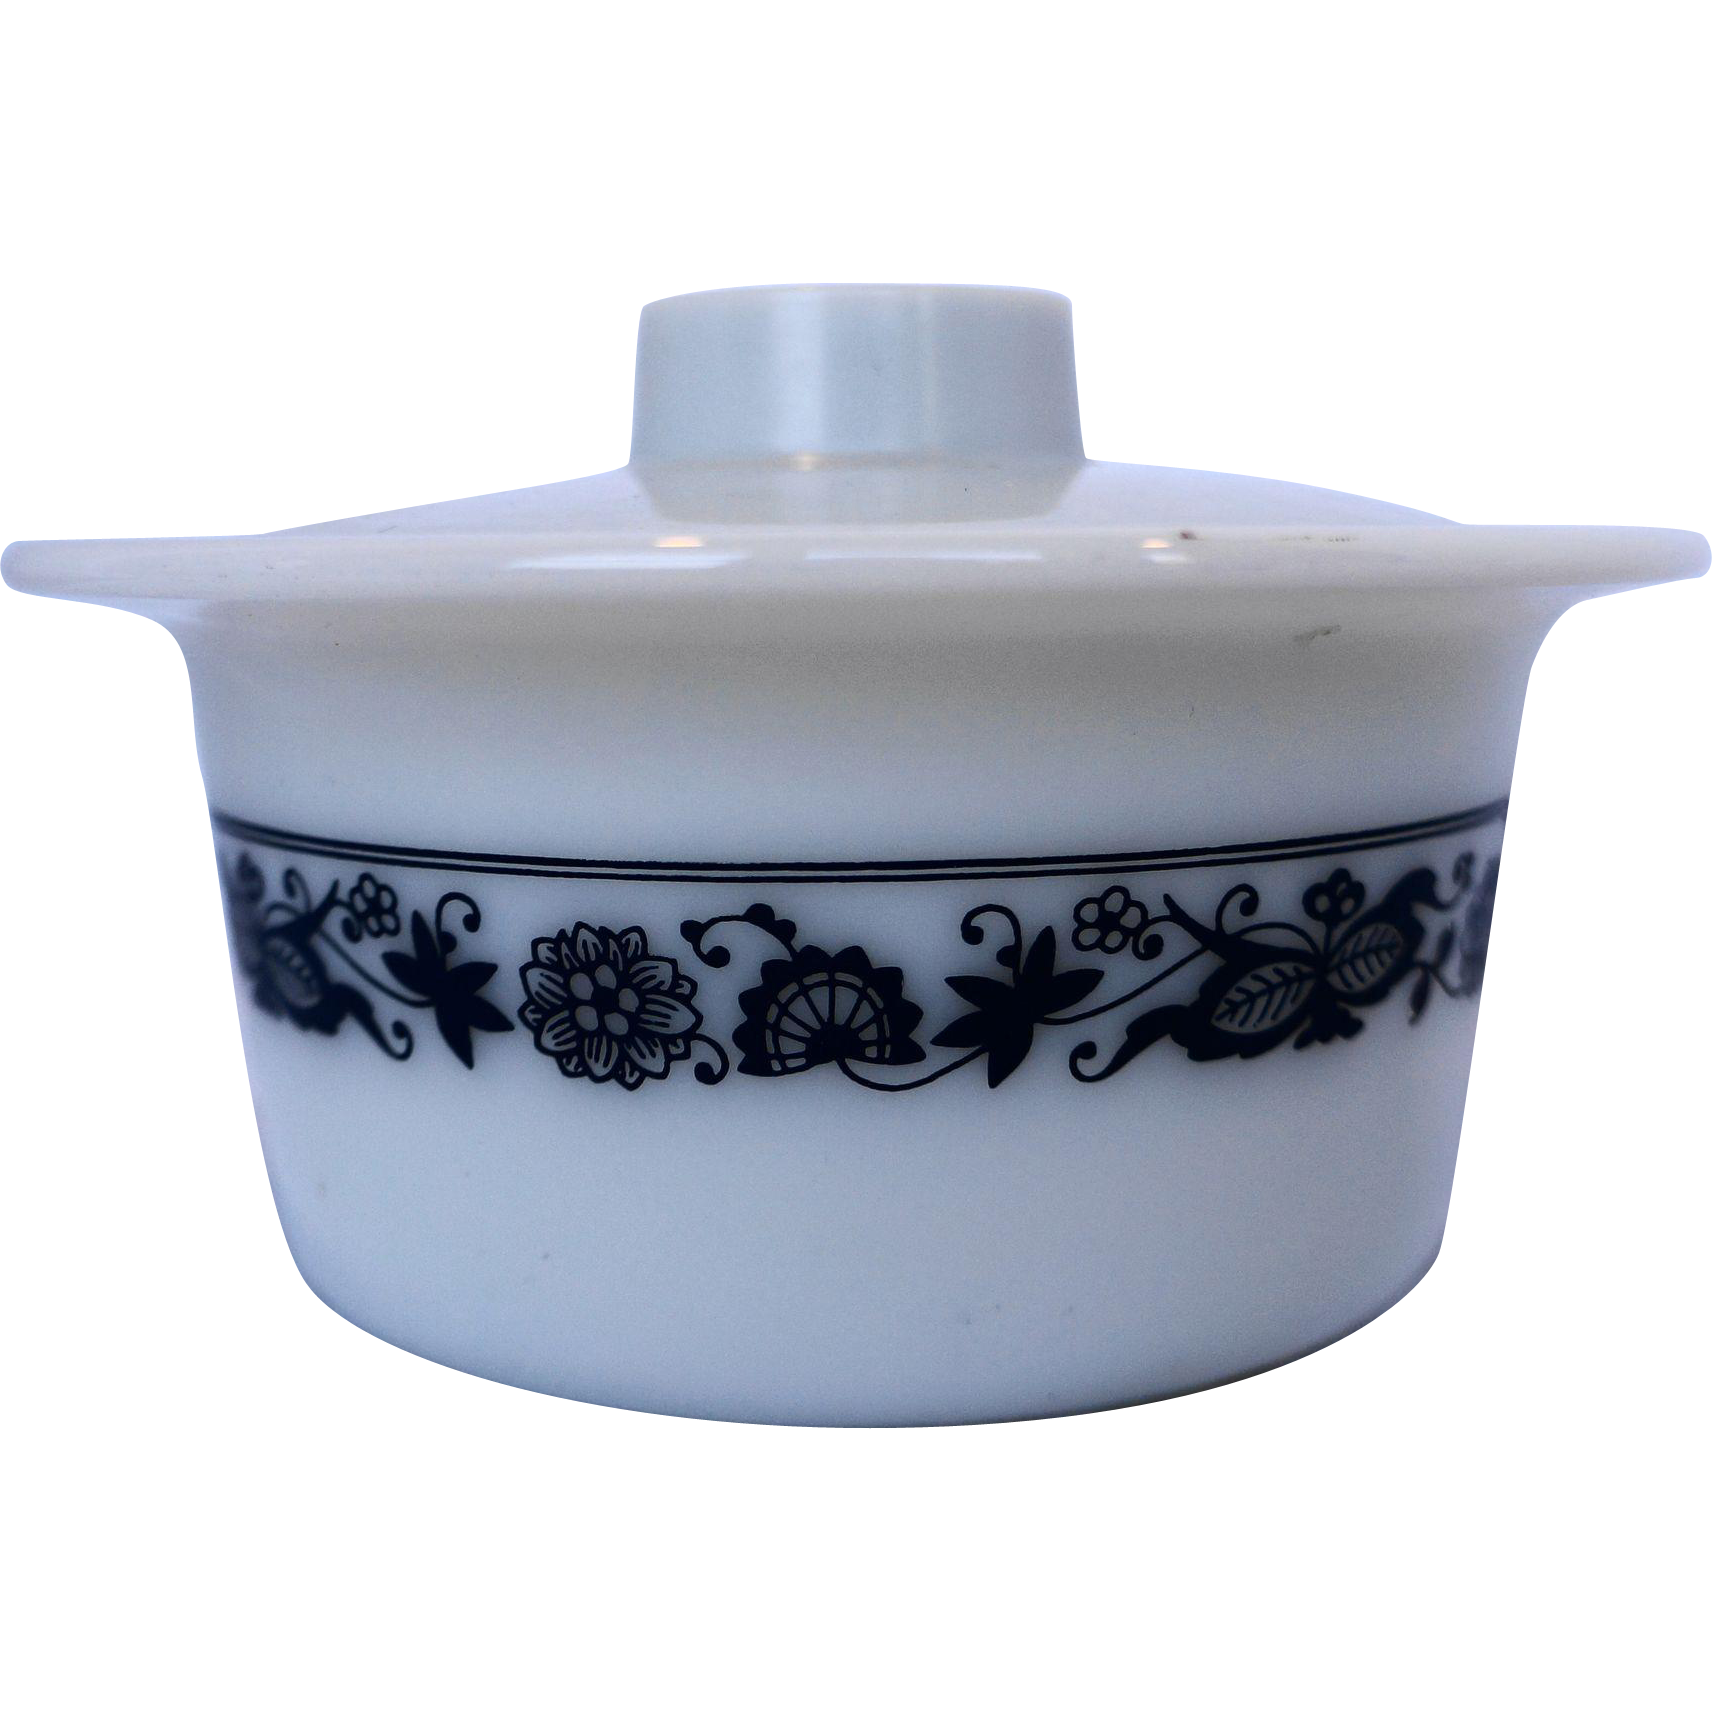 Pyrex Old Town Blue Onion Butter Margarine Tub With Lid